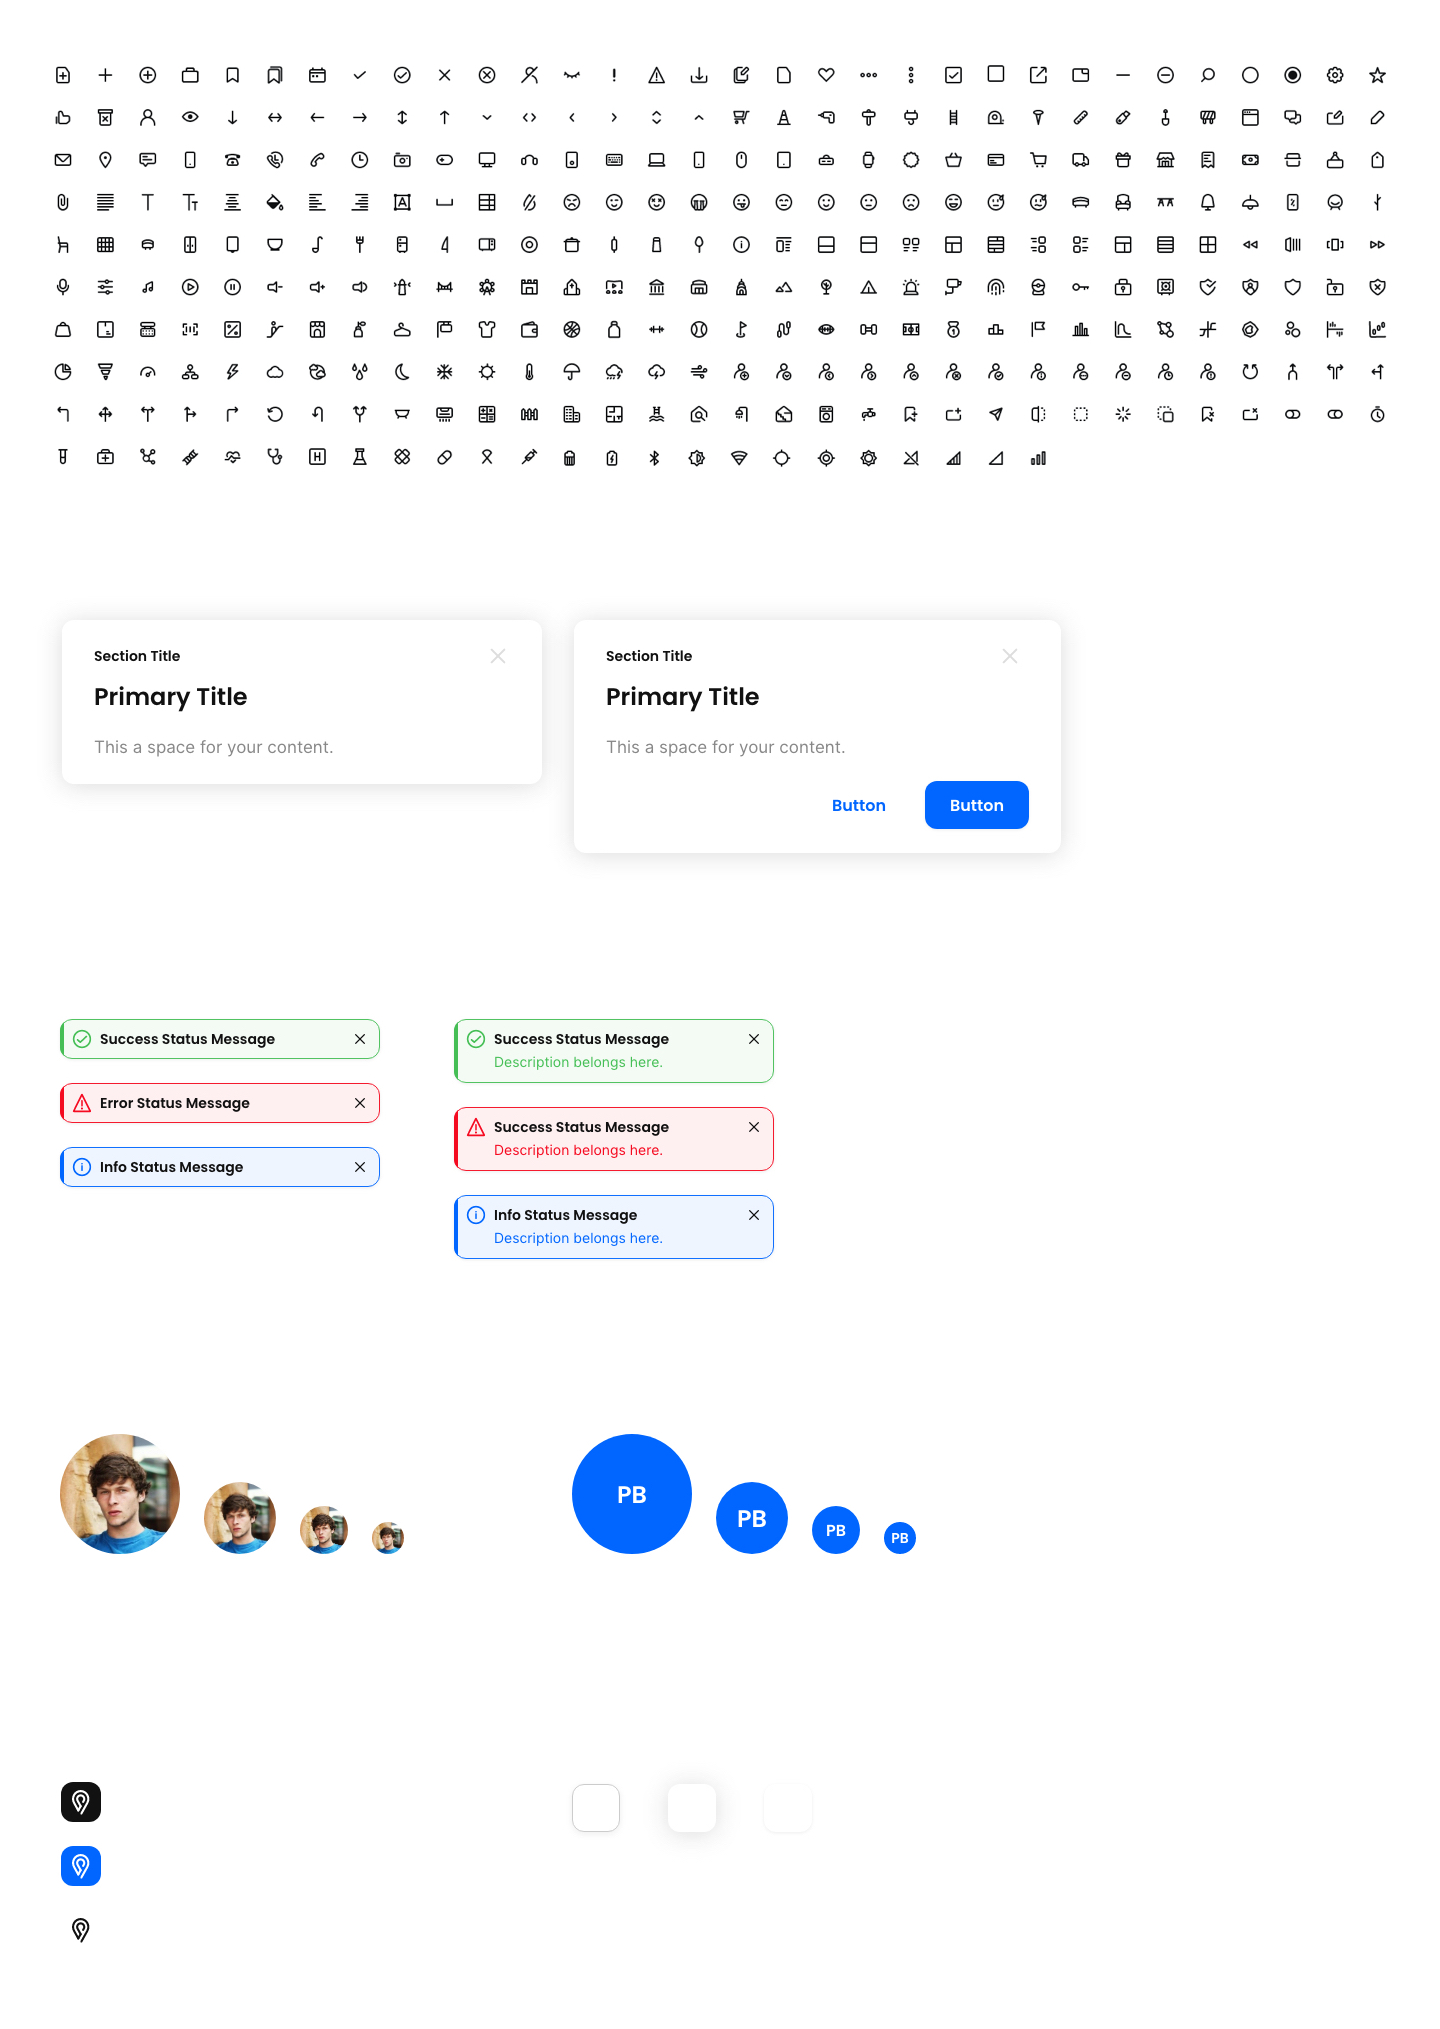 Adobe XD Starter Kit - Adobe XD - Starter Kit is UI kit based on the main Web components to help you start designing and web apps without breaking limits of your creativity.